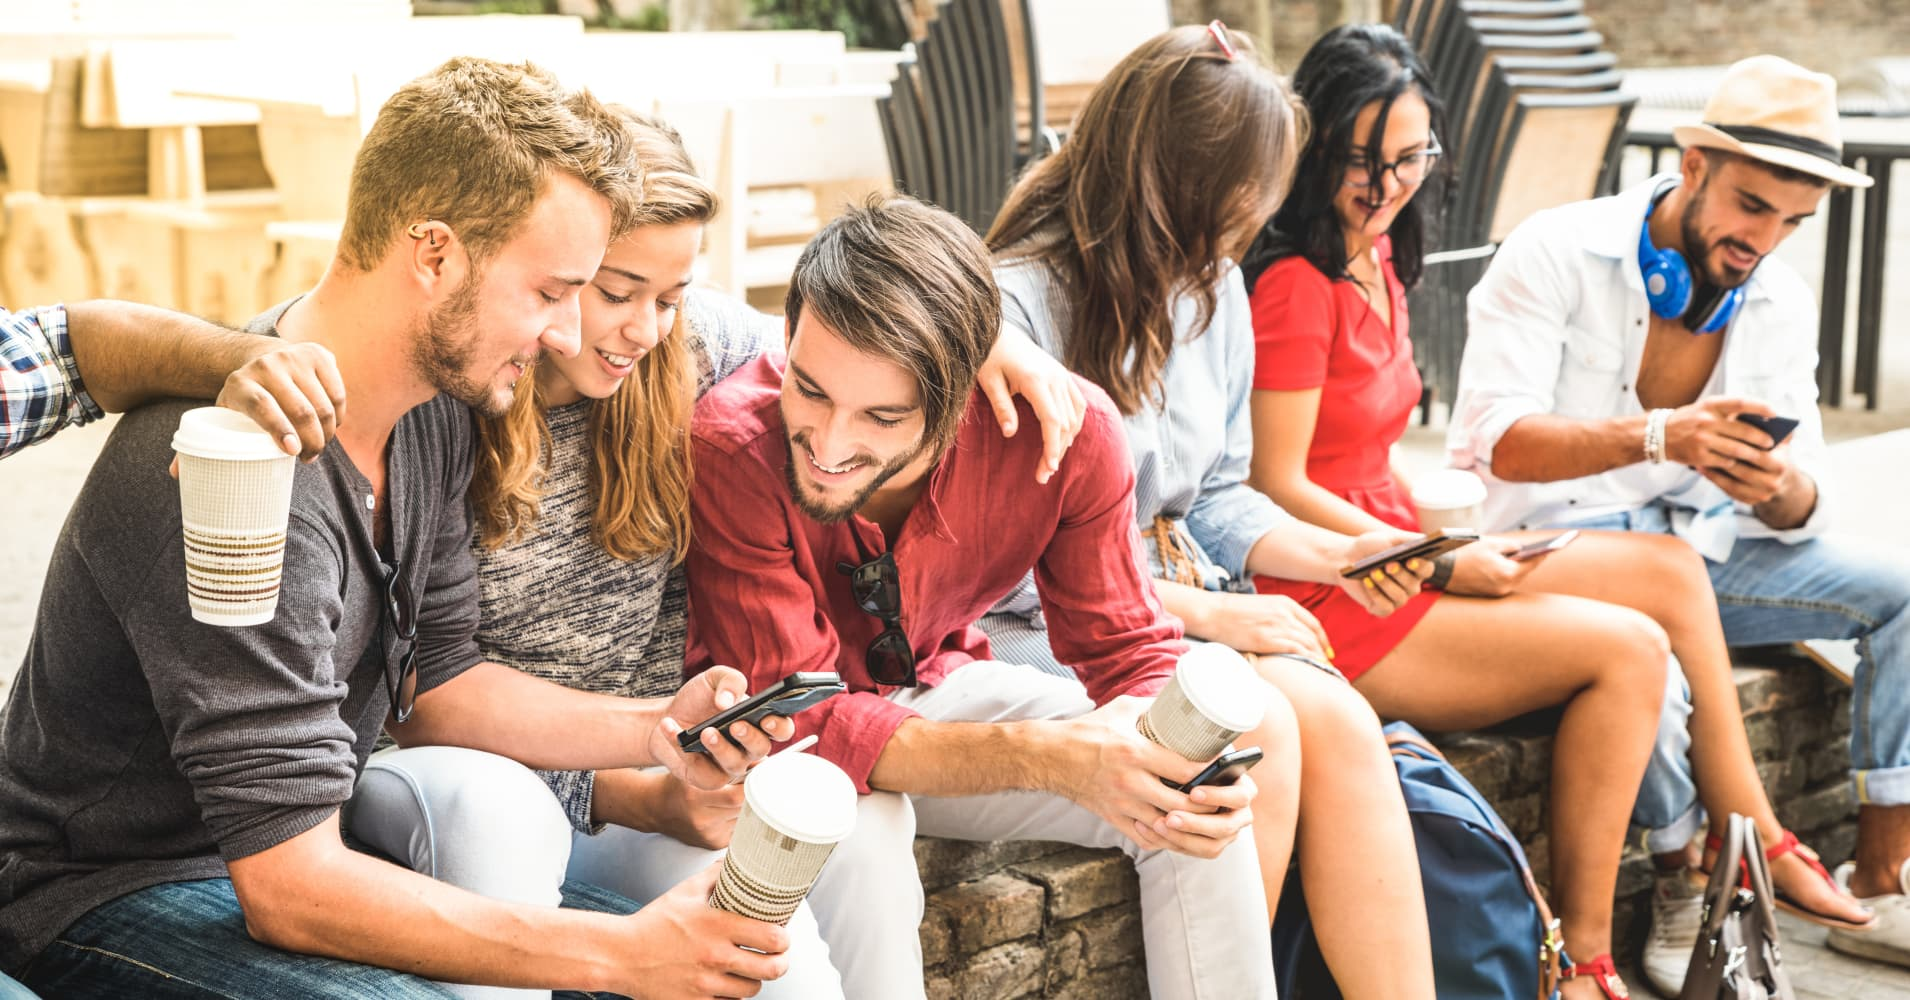 Young people addicted to their smartphones